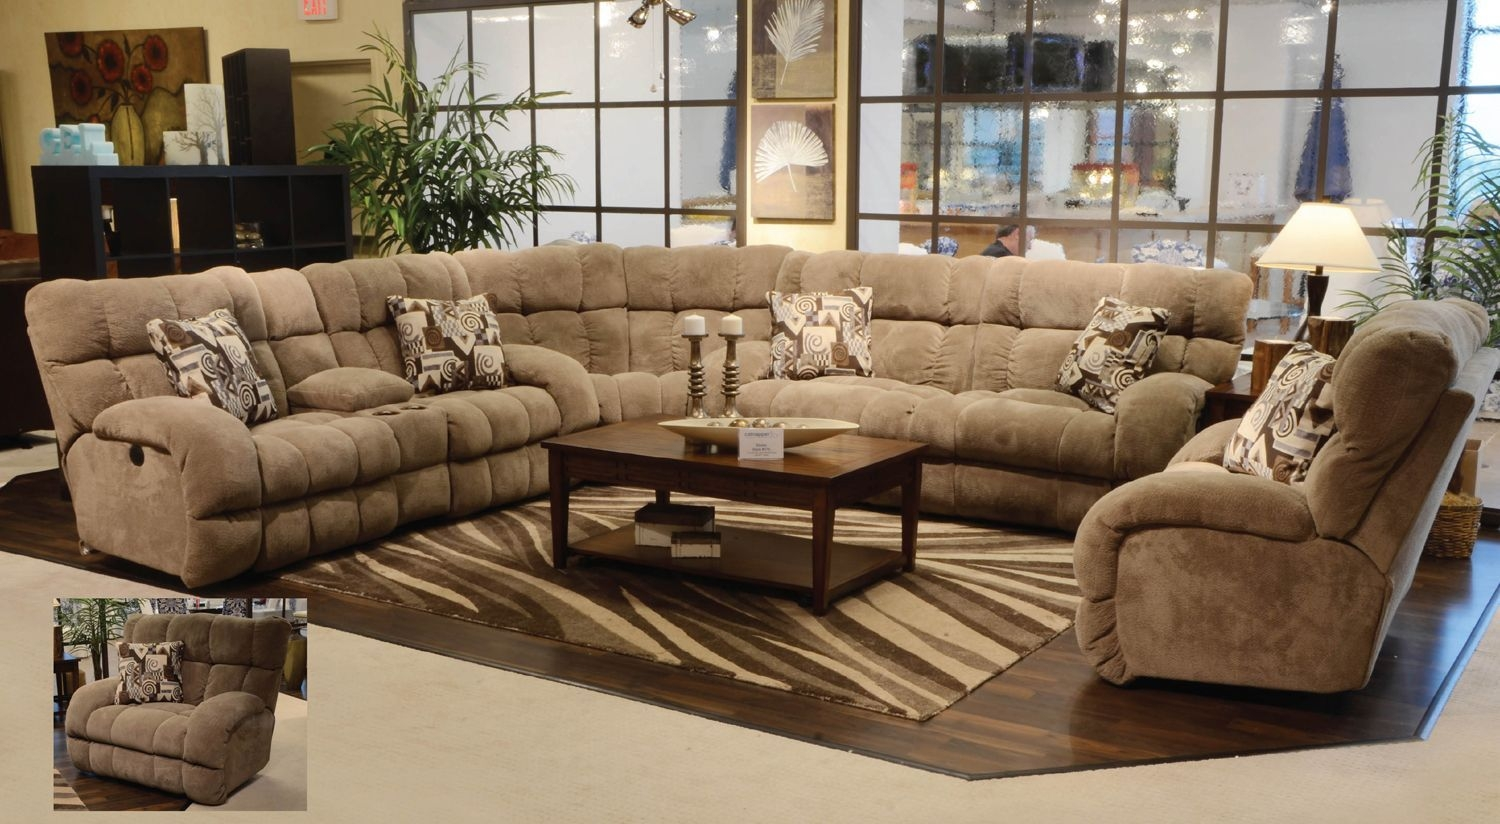 Large Sectional Sofa Christianismeceleste For Extra Large Sectional Sofas (View 15 of 15)